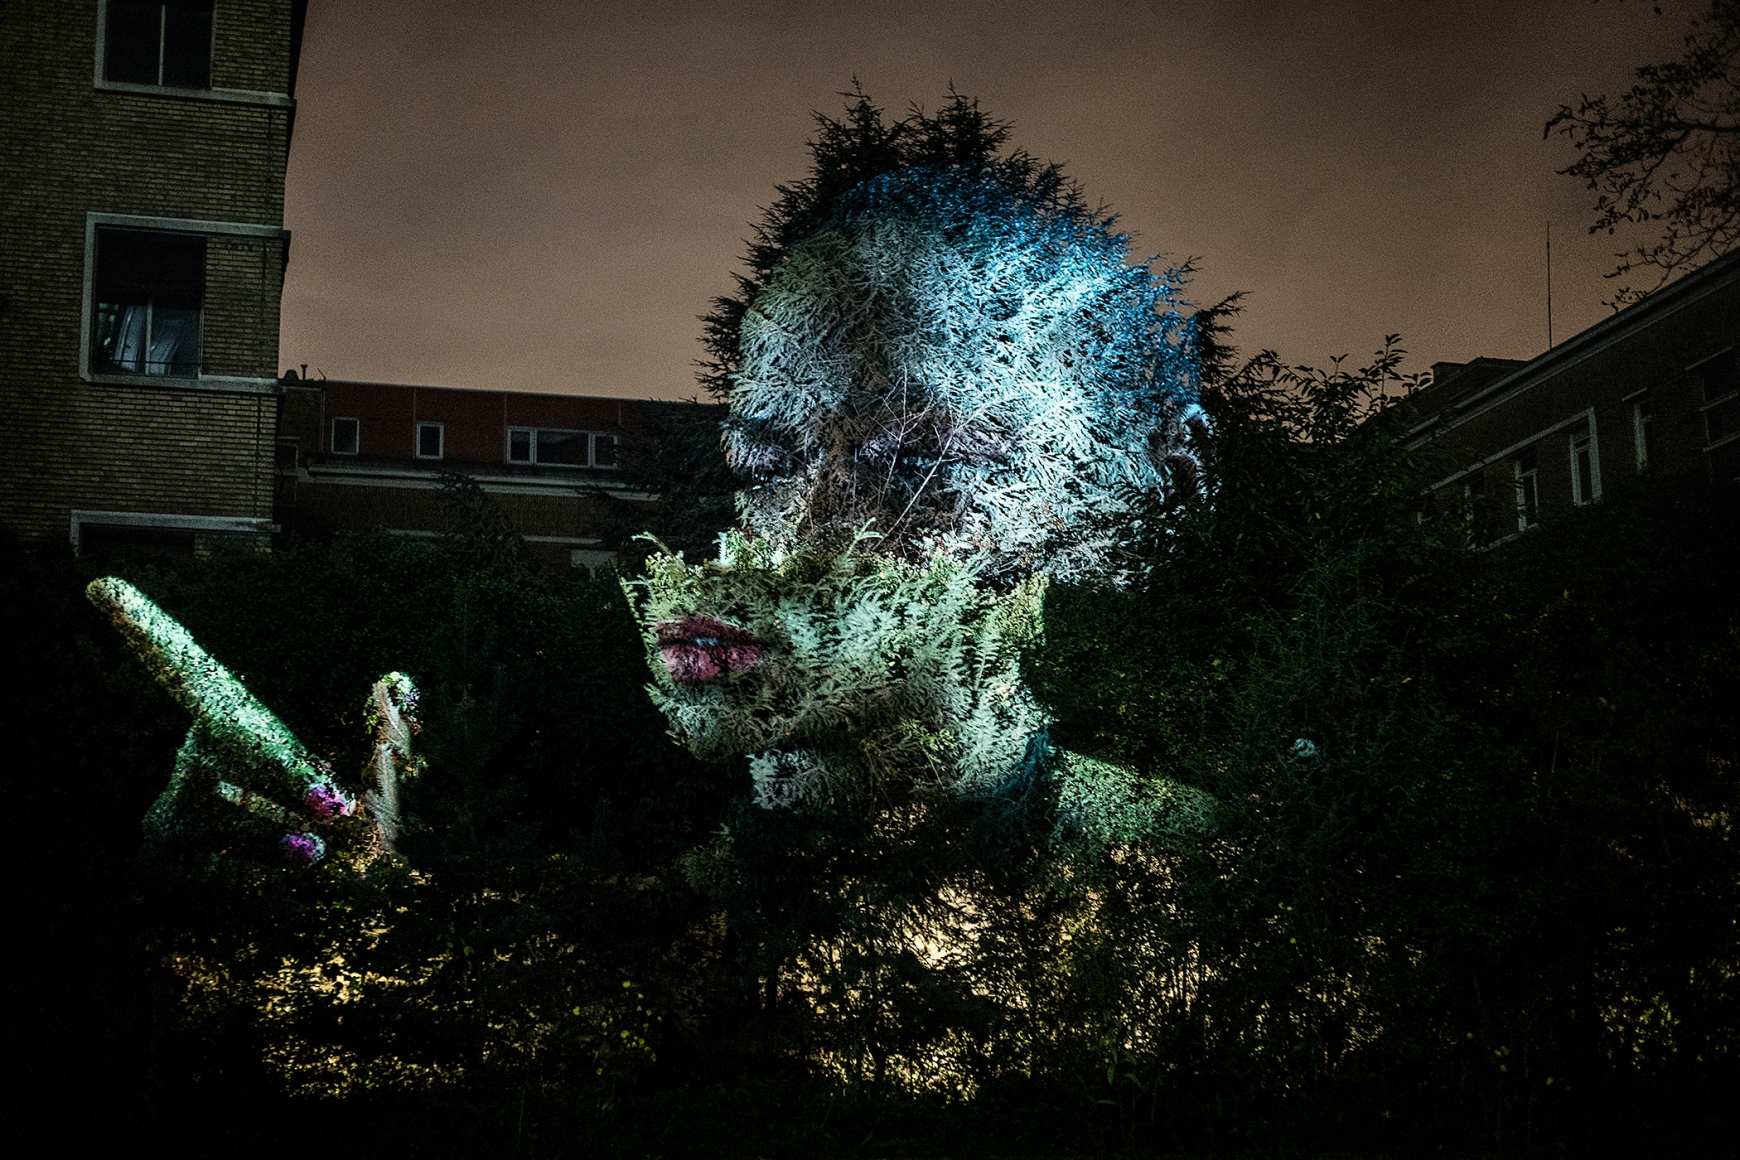 Tony Oursler: Eclipse, Fondation Cartier, Paris